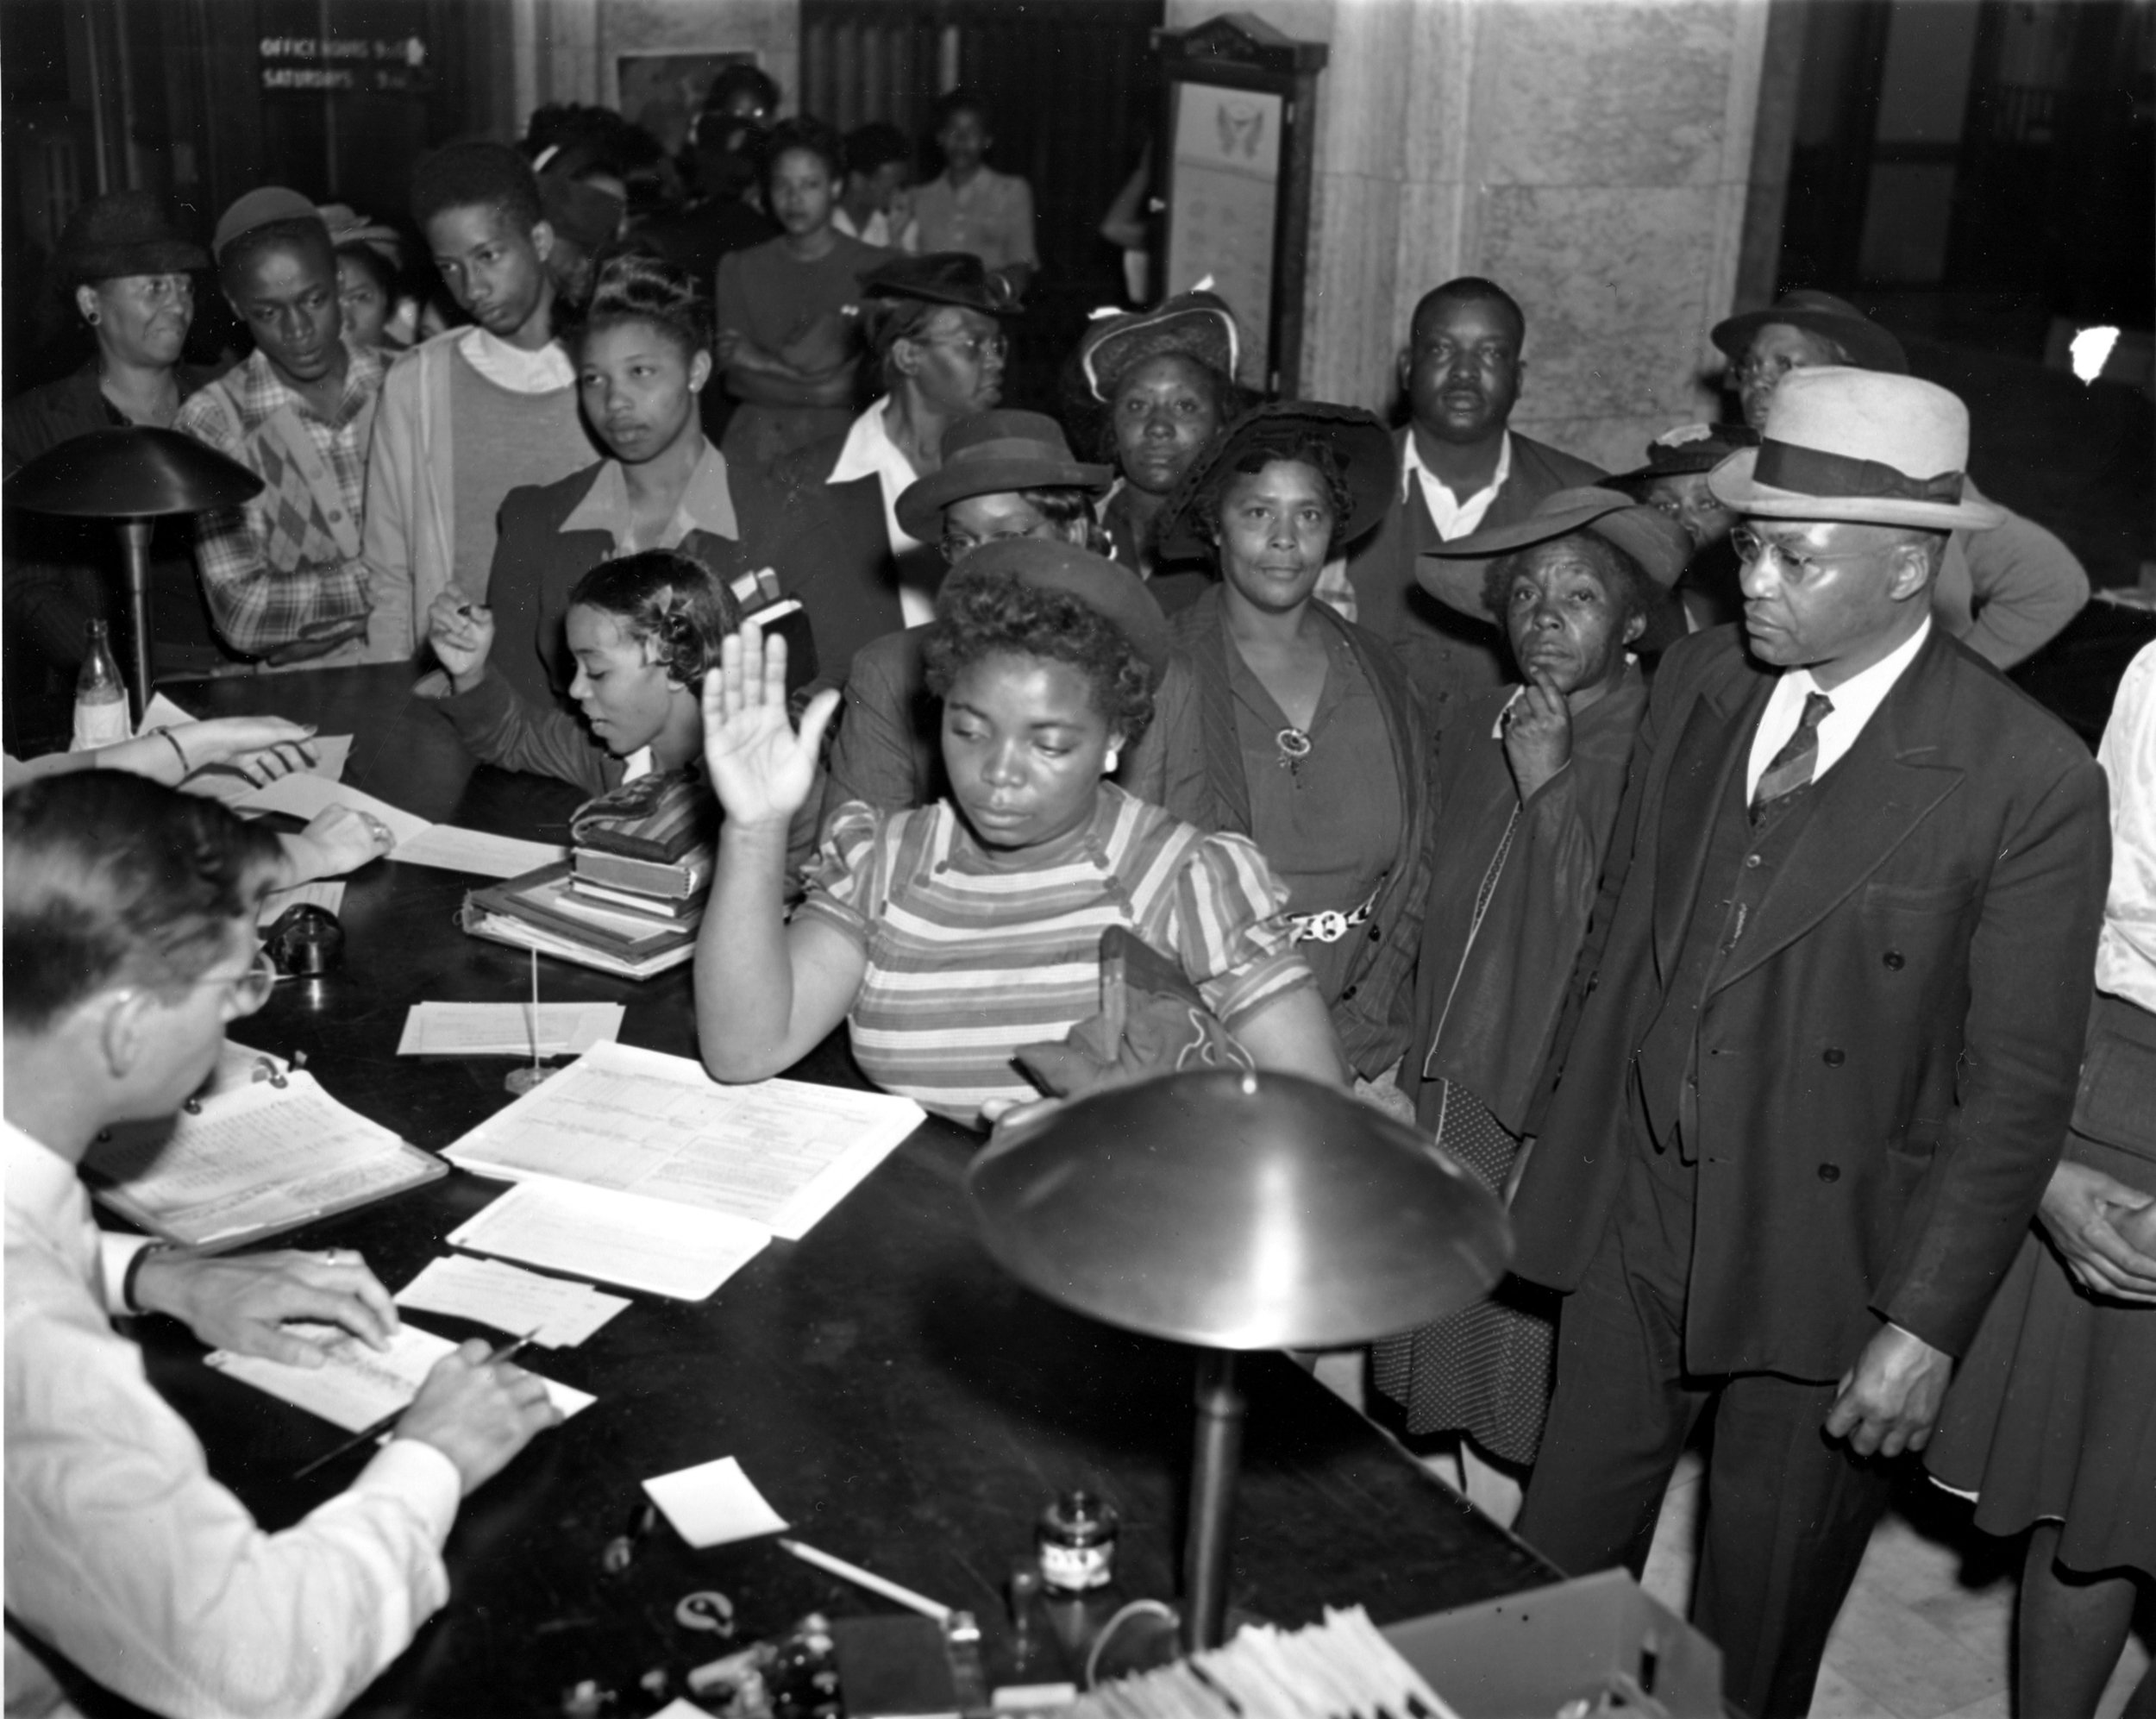 """PAGE 9: A WATERSHED MOMENT IN THE LONG STRUGGLE FOR JUSTICE AND EQUALITY WAS THE US SUPREME COURT DECISION IN SMITH V. ALLWRIGHT, DECLARING IT UNCONSTITUTIONAL TO DENY A CITIZEN, REGARDLESS OF RACE, FROM PARTICIPATING IN PRIMARY ELECTIONS, OFTEN REFERRED TO AS """"WHITE PRIMARIES"""" (PERMISSION OF THE ASSOCIATED PRESS)."""